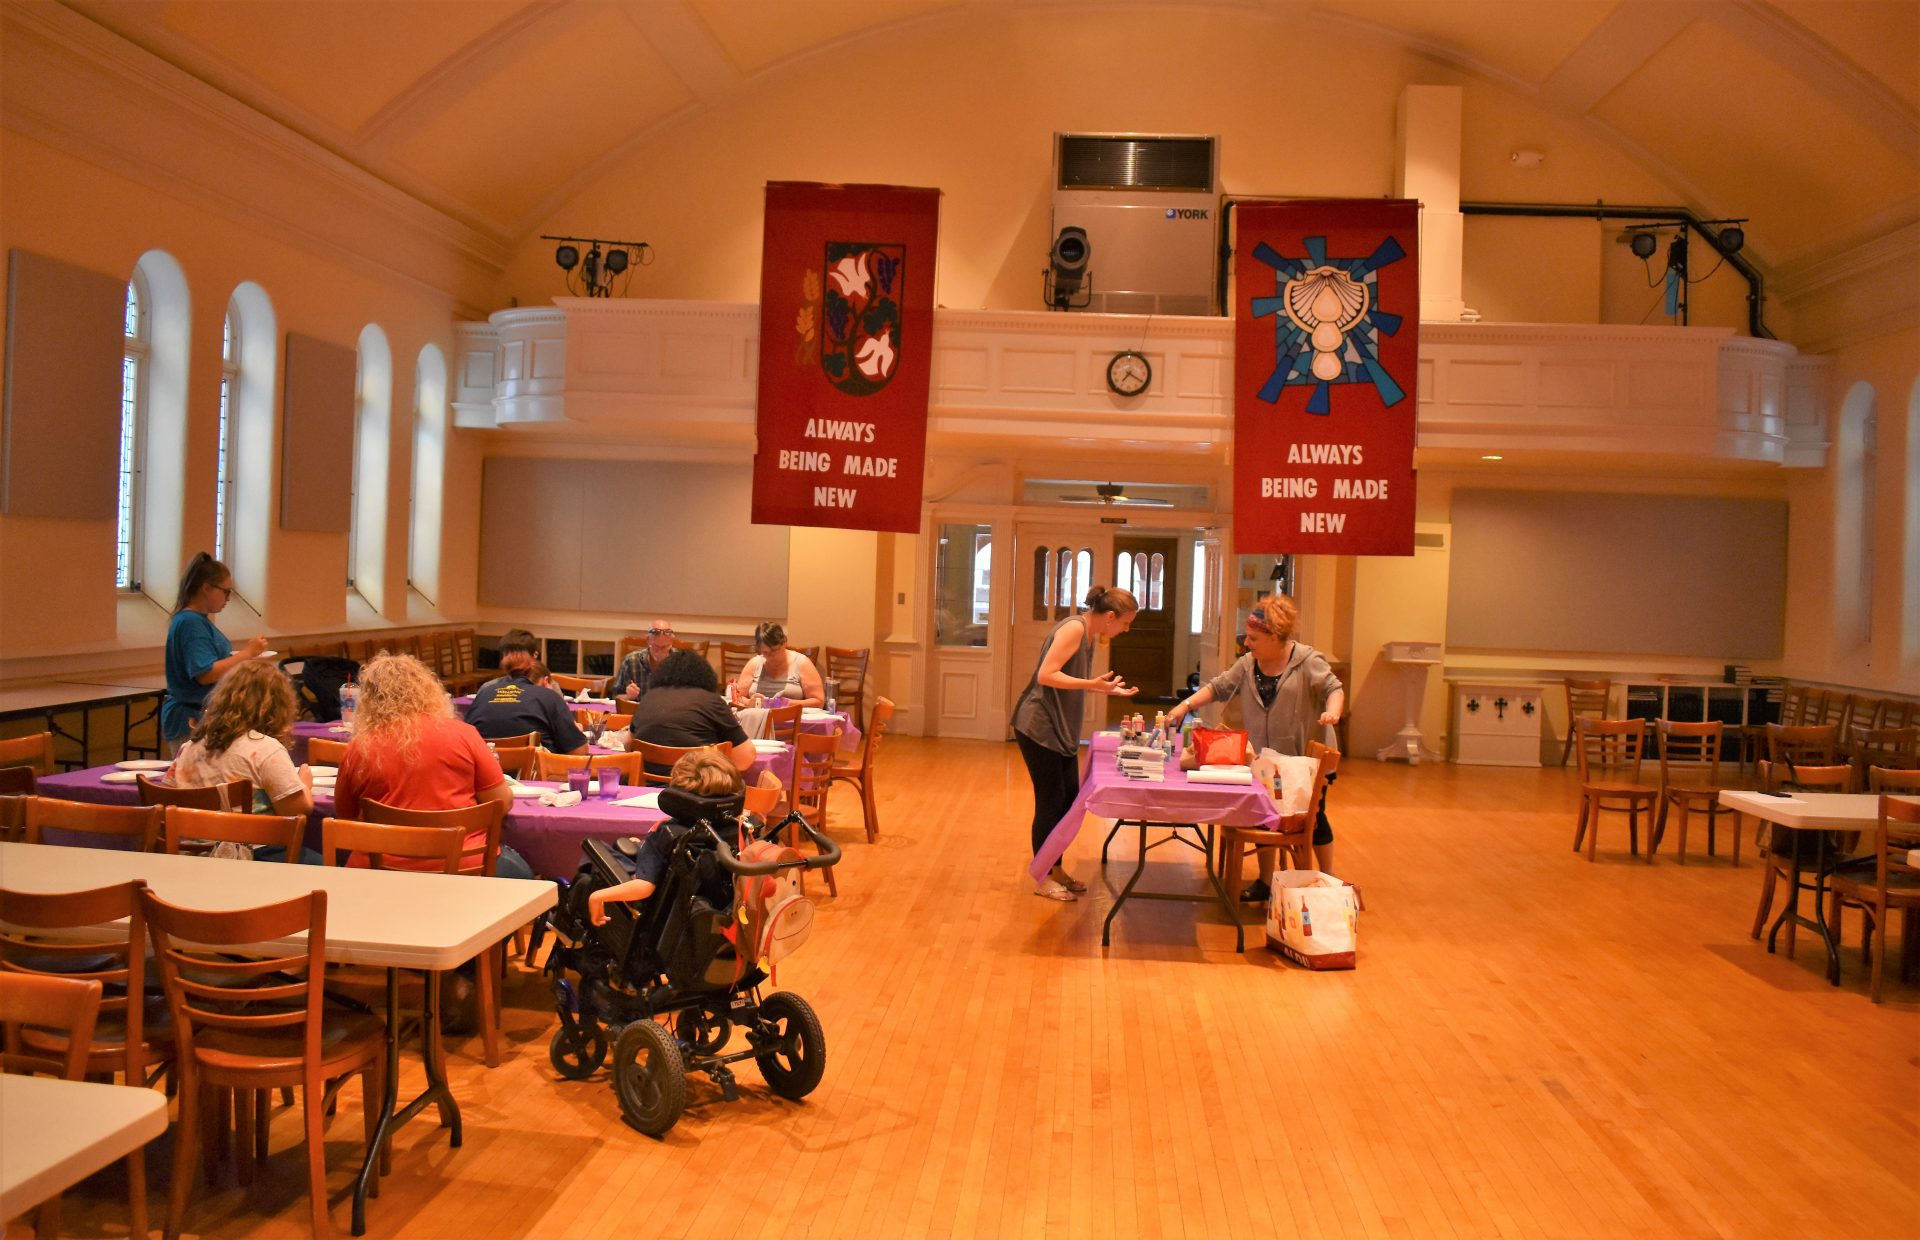 York community members work on art projects at Union Lutheran Church in York on June 12, 2019.